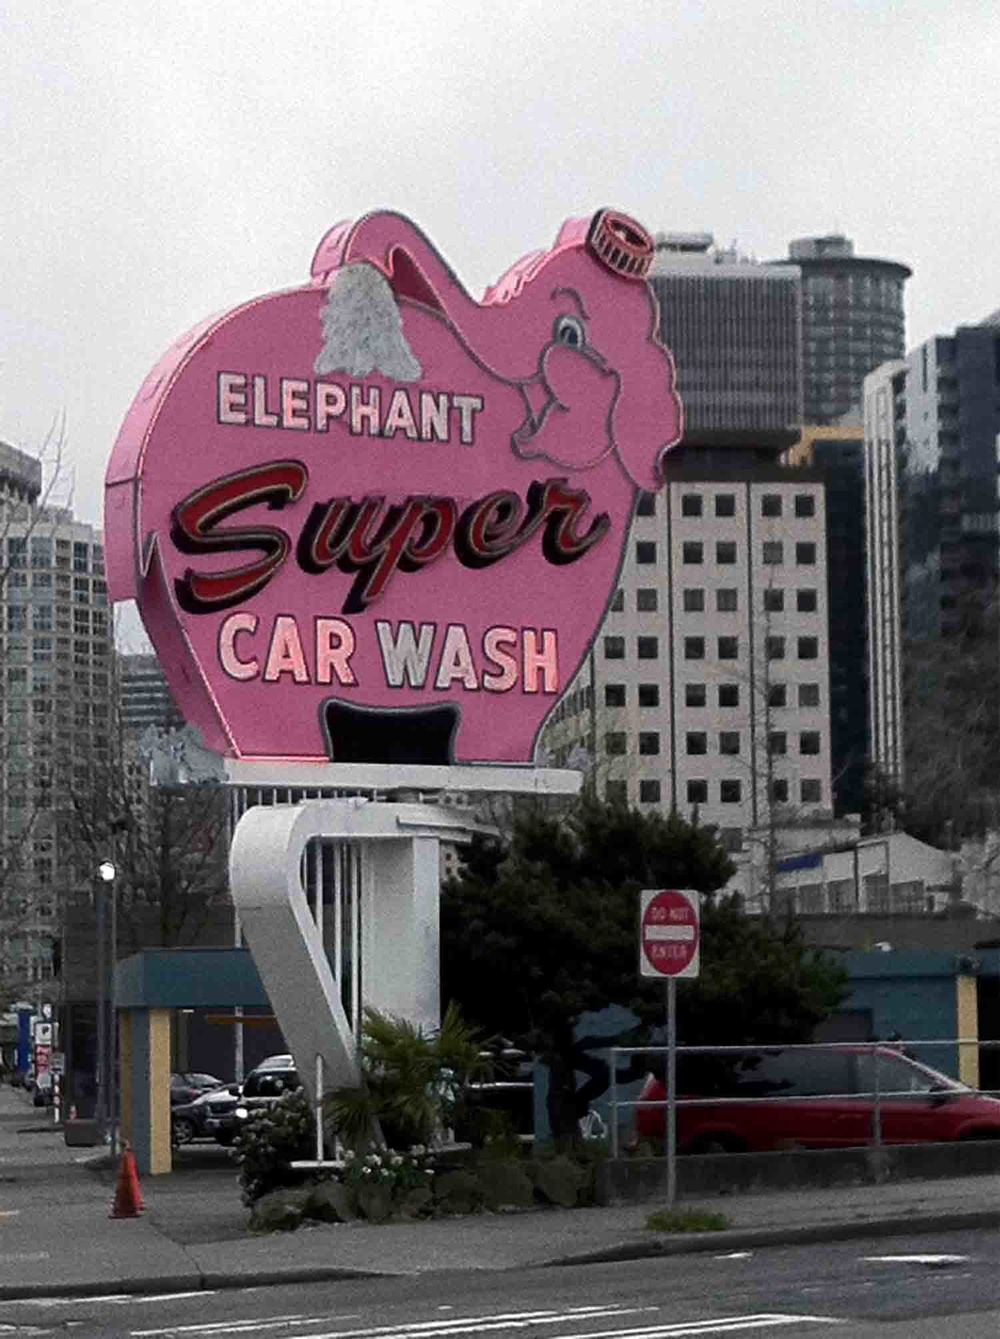 Elephant carwash copy.jpg